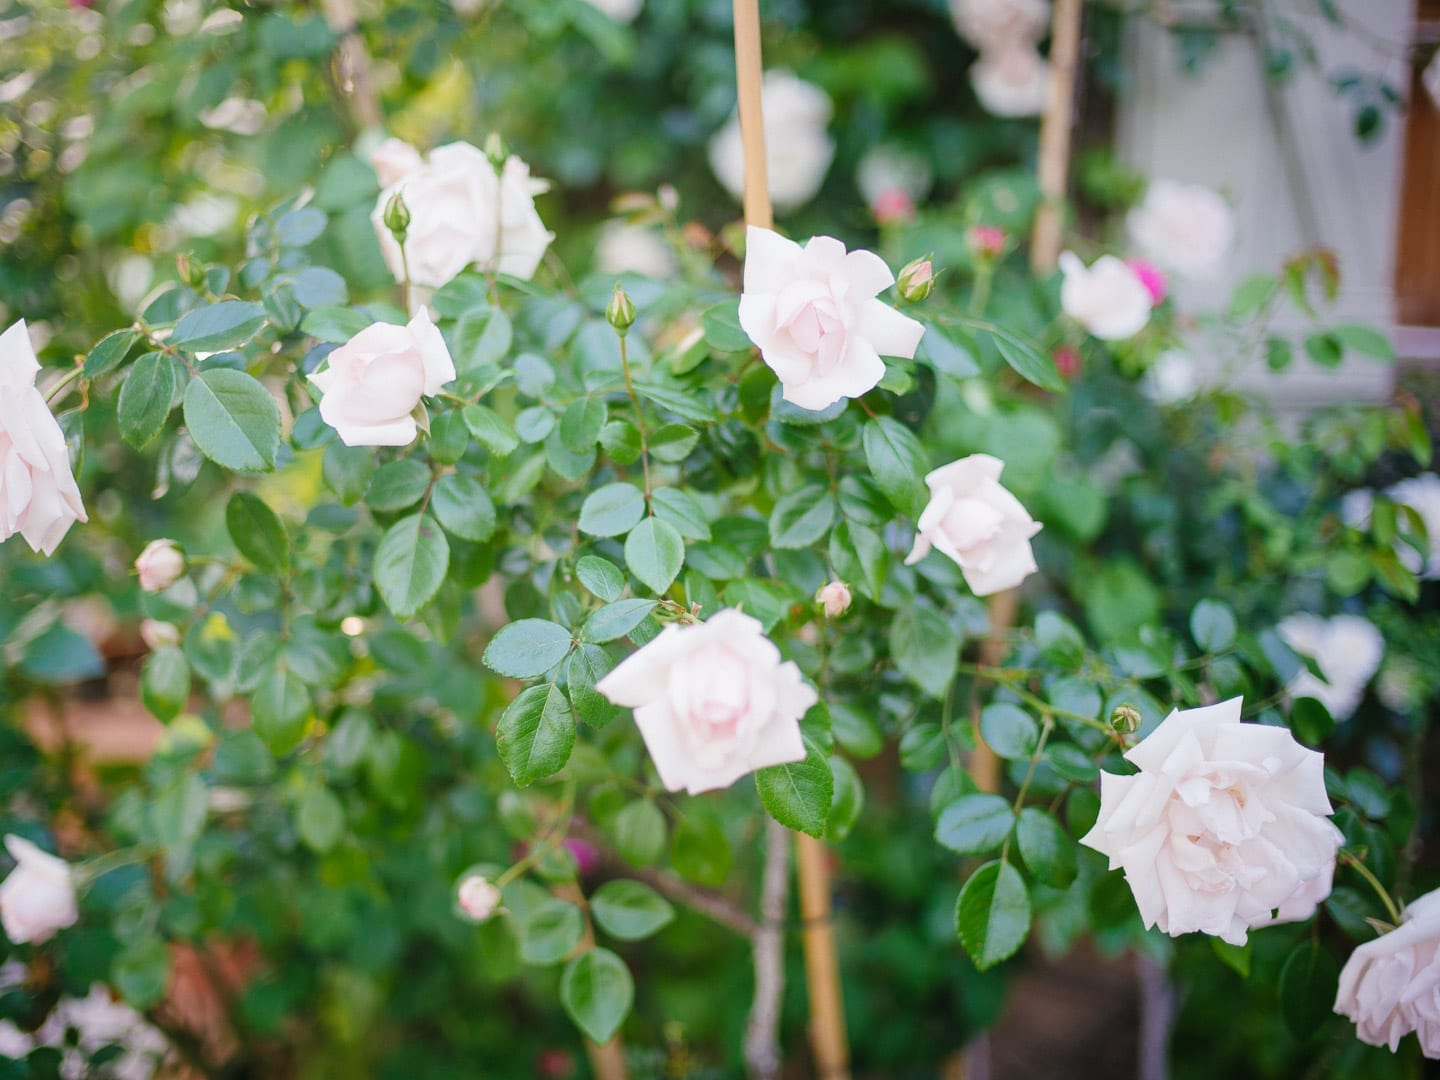 Light pink roses on a trellis - First Glimpse of France